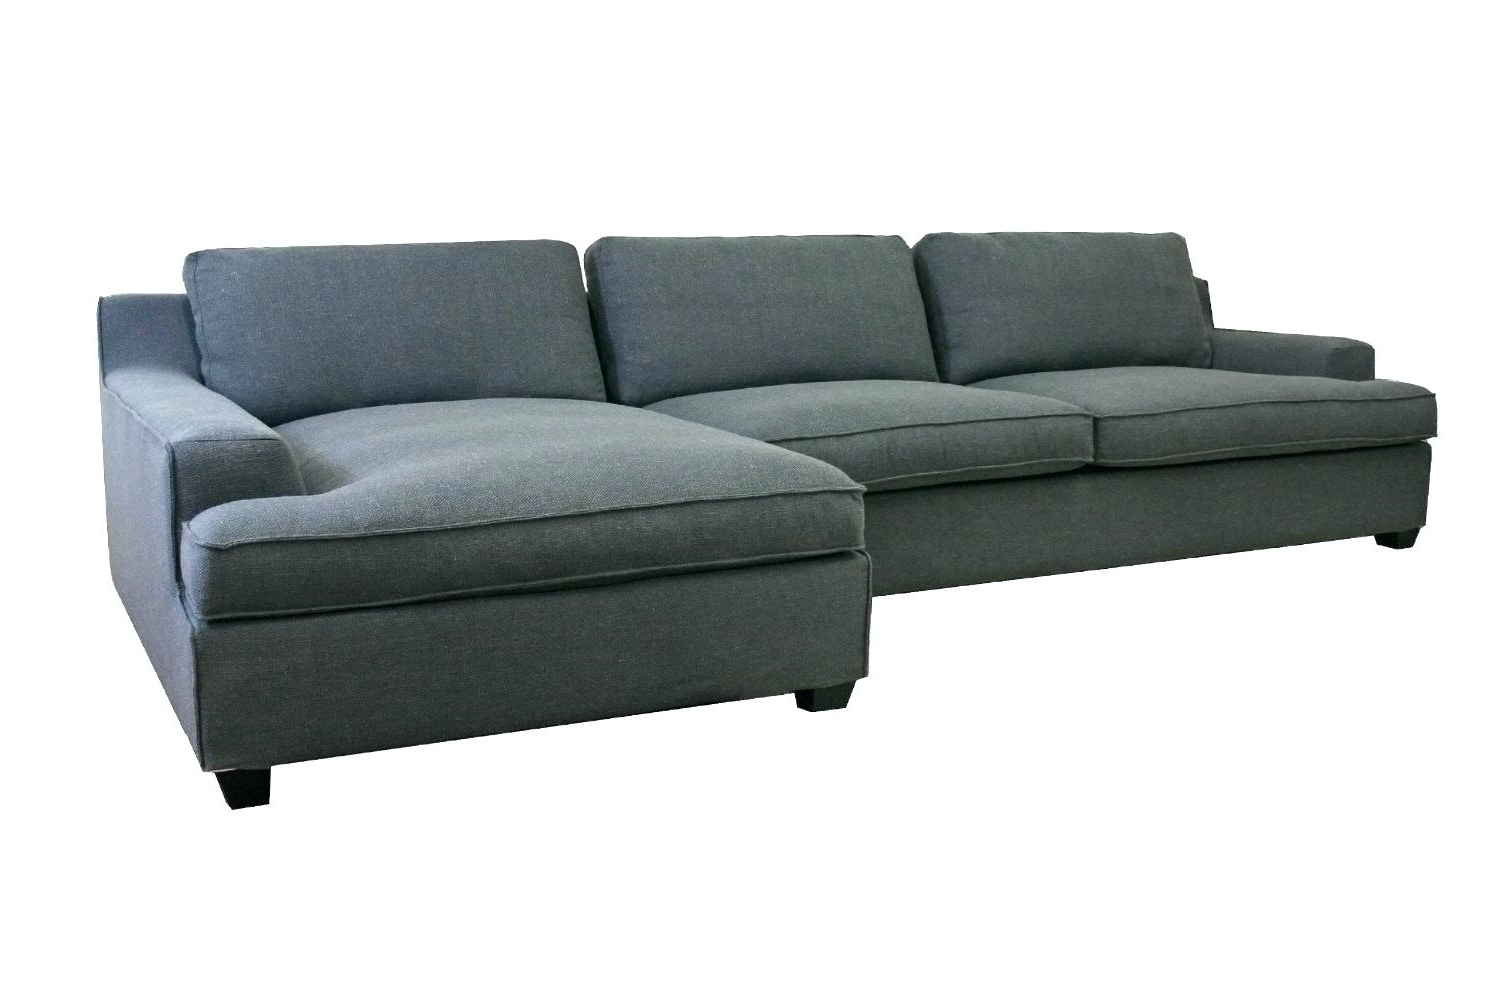 Lounge Furniture Rentals Orange County Couch For Sale Sofa Bed Intended For Current Orange County Sofas (View 3 of 20)